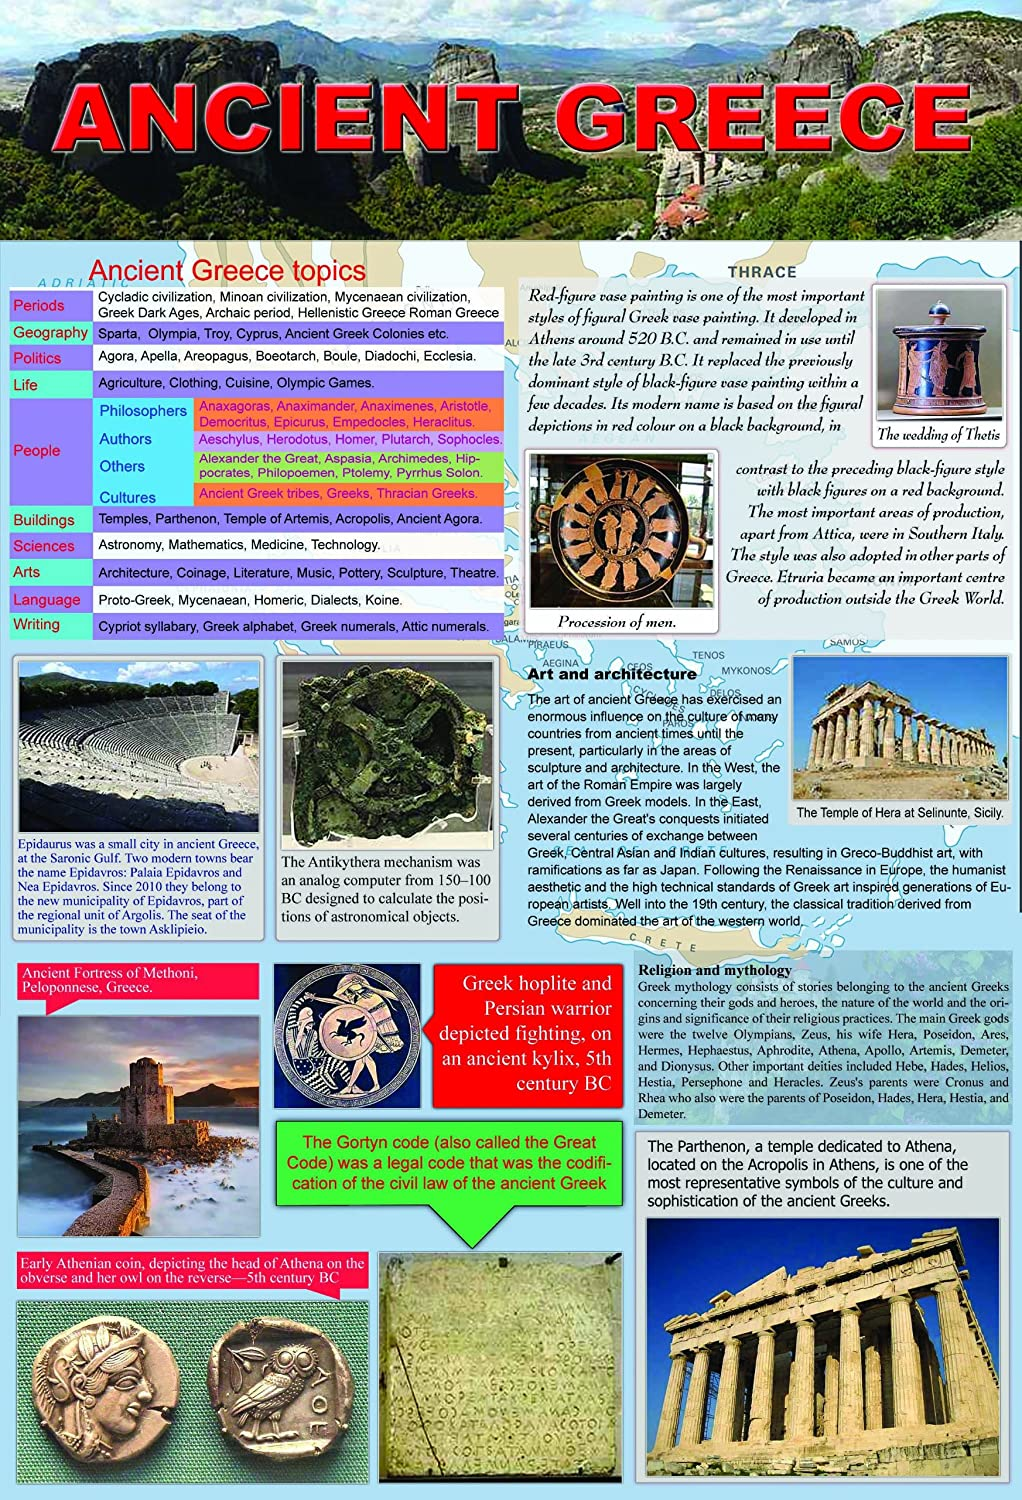 Laminated Ancient Greece Poster Educational History Teaching Wall